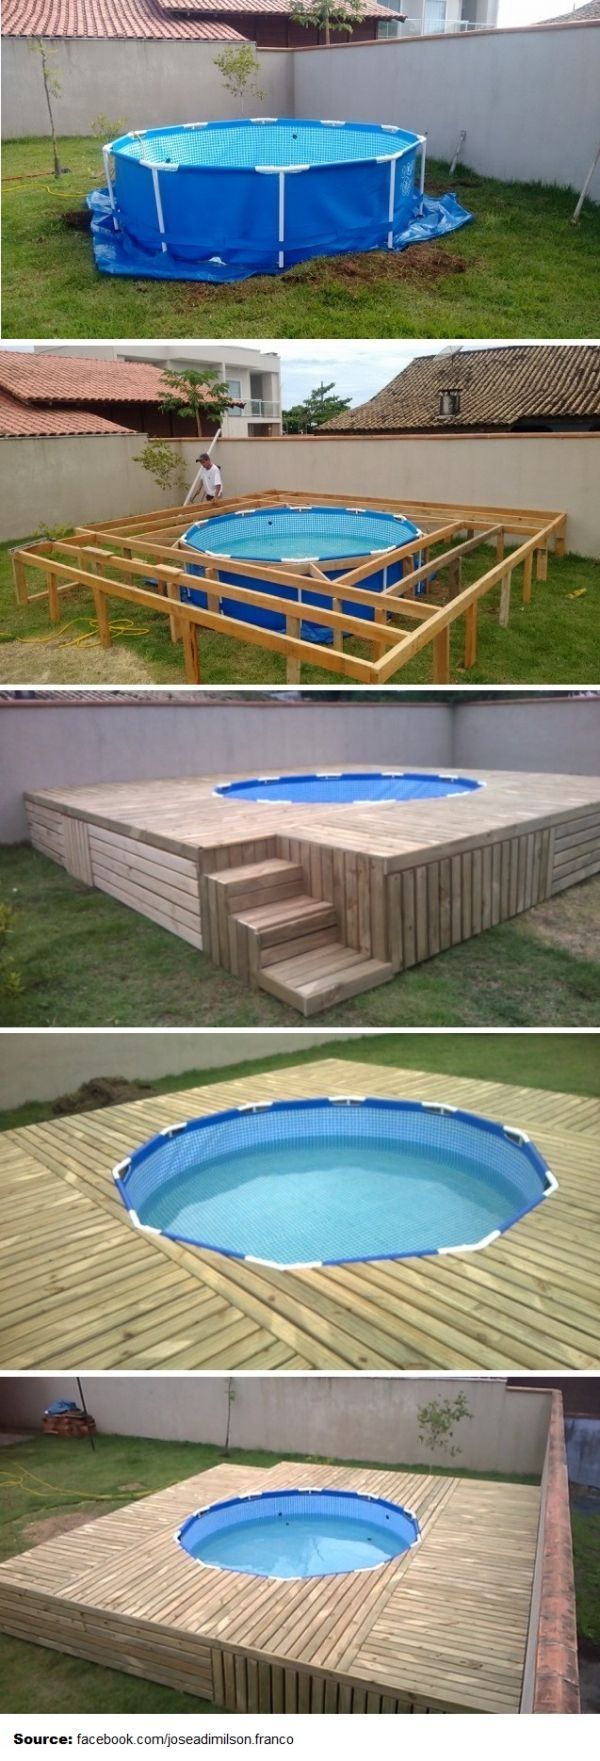 Budget friendly swimming pool deck by jos adimilson for Budget swimming pools